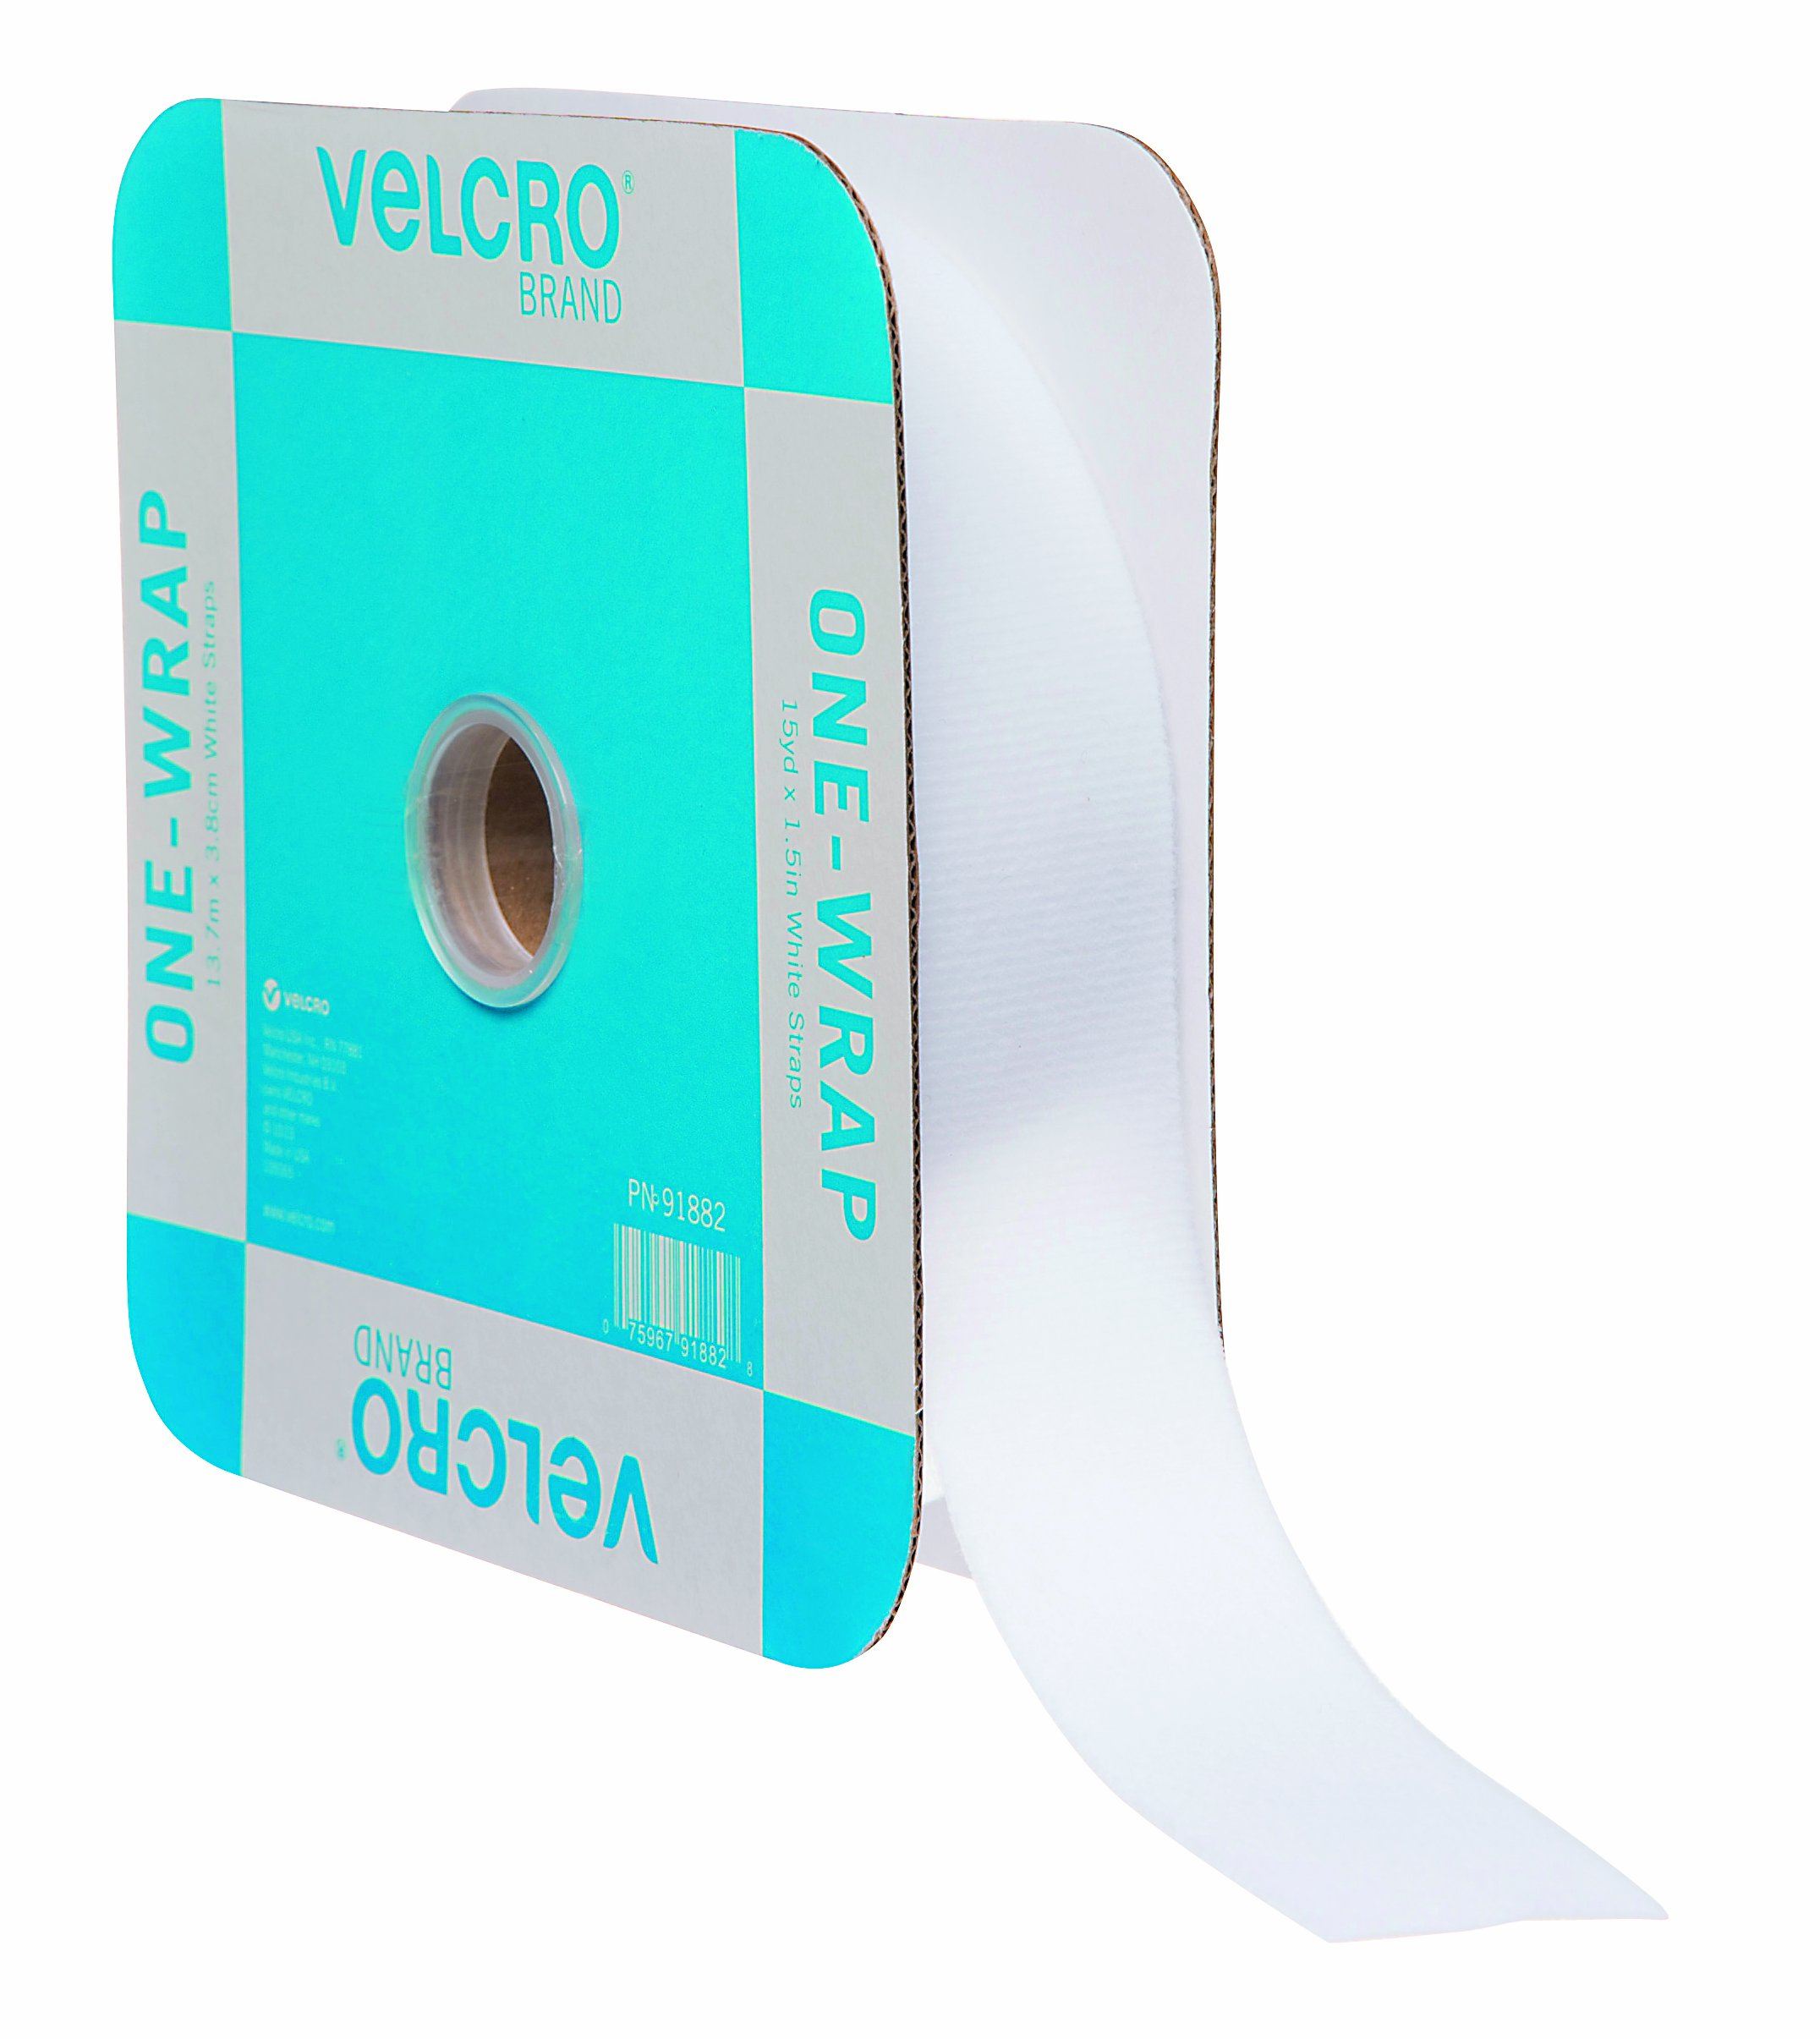 VELCRO Brand ONE-WRAP Bundling Ties – Reusable Fasteners for Keeping Cords and Cables Tidy – Cut-to-Length Roll, 45ft x 1 1/2in, White, 91882